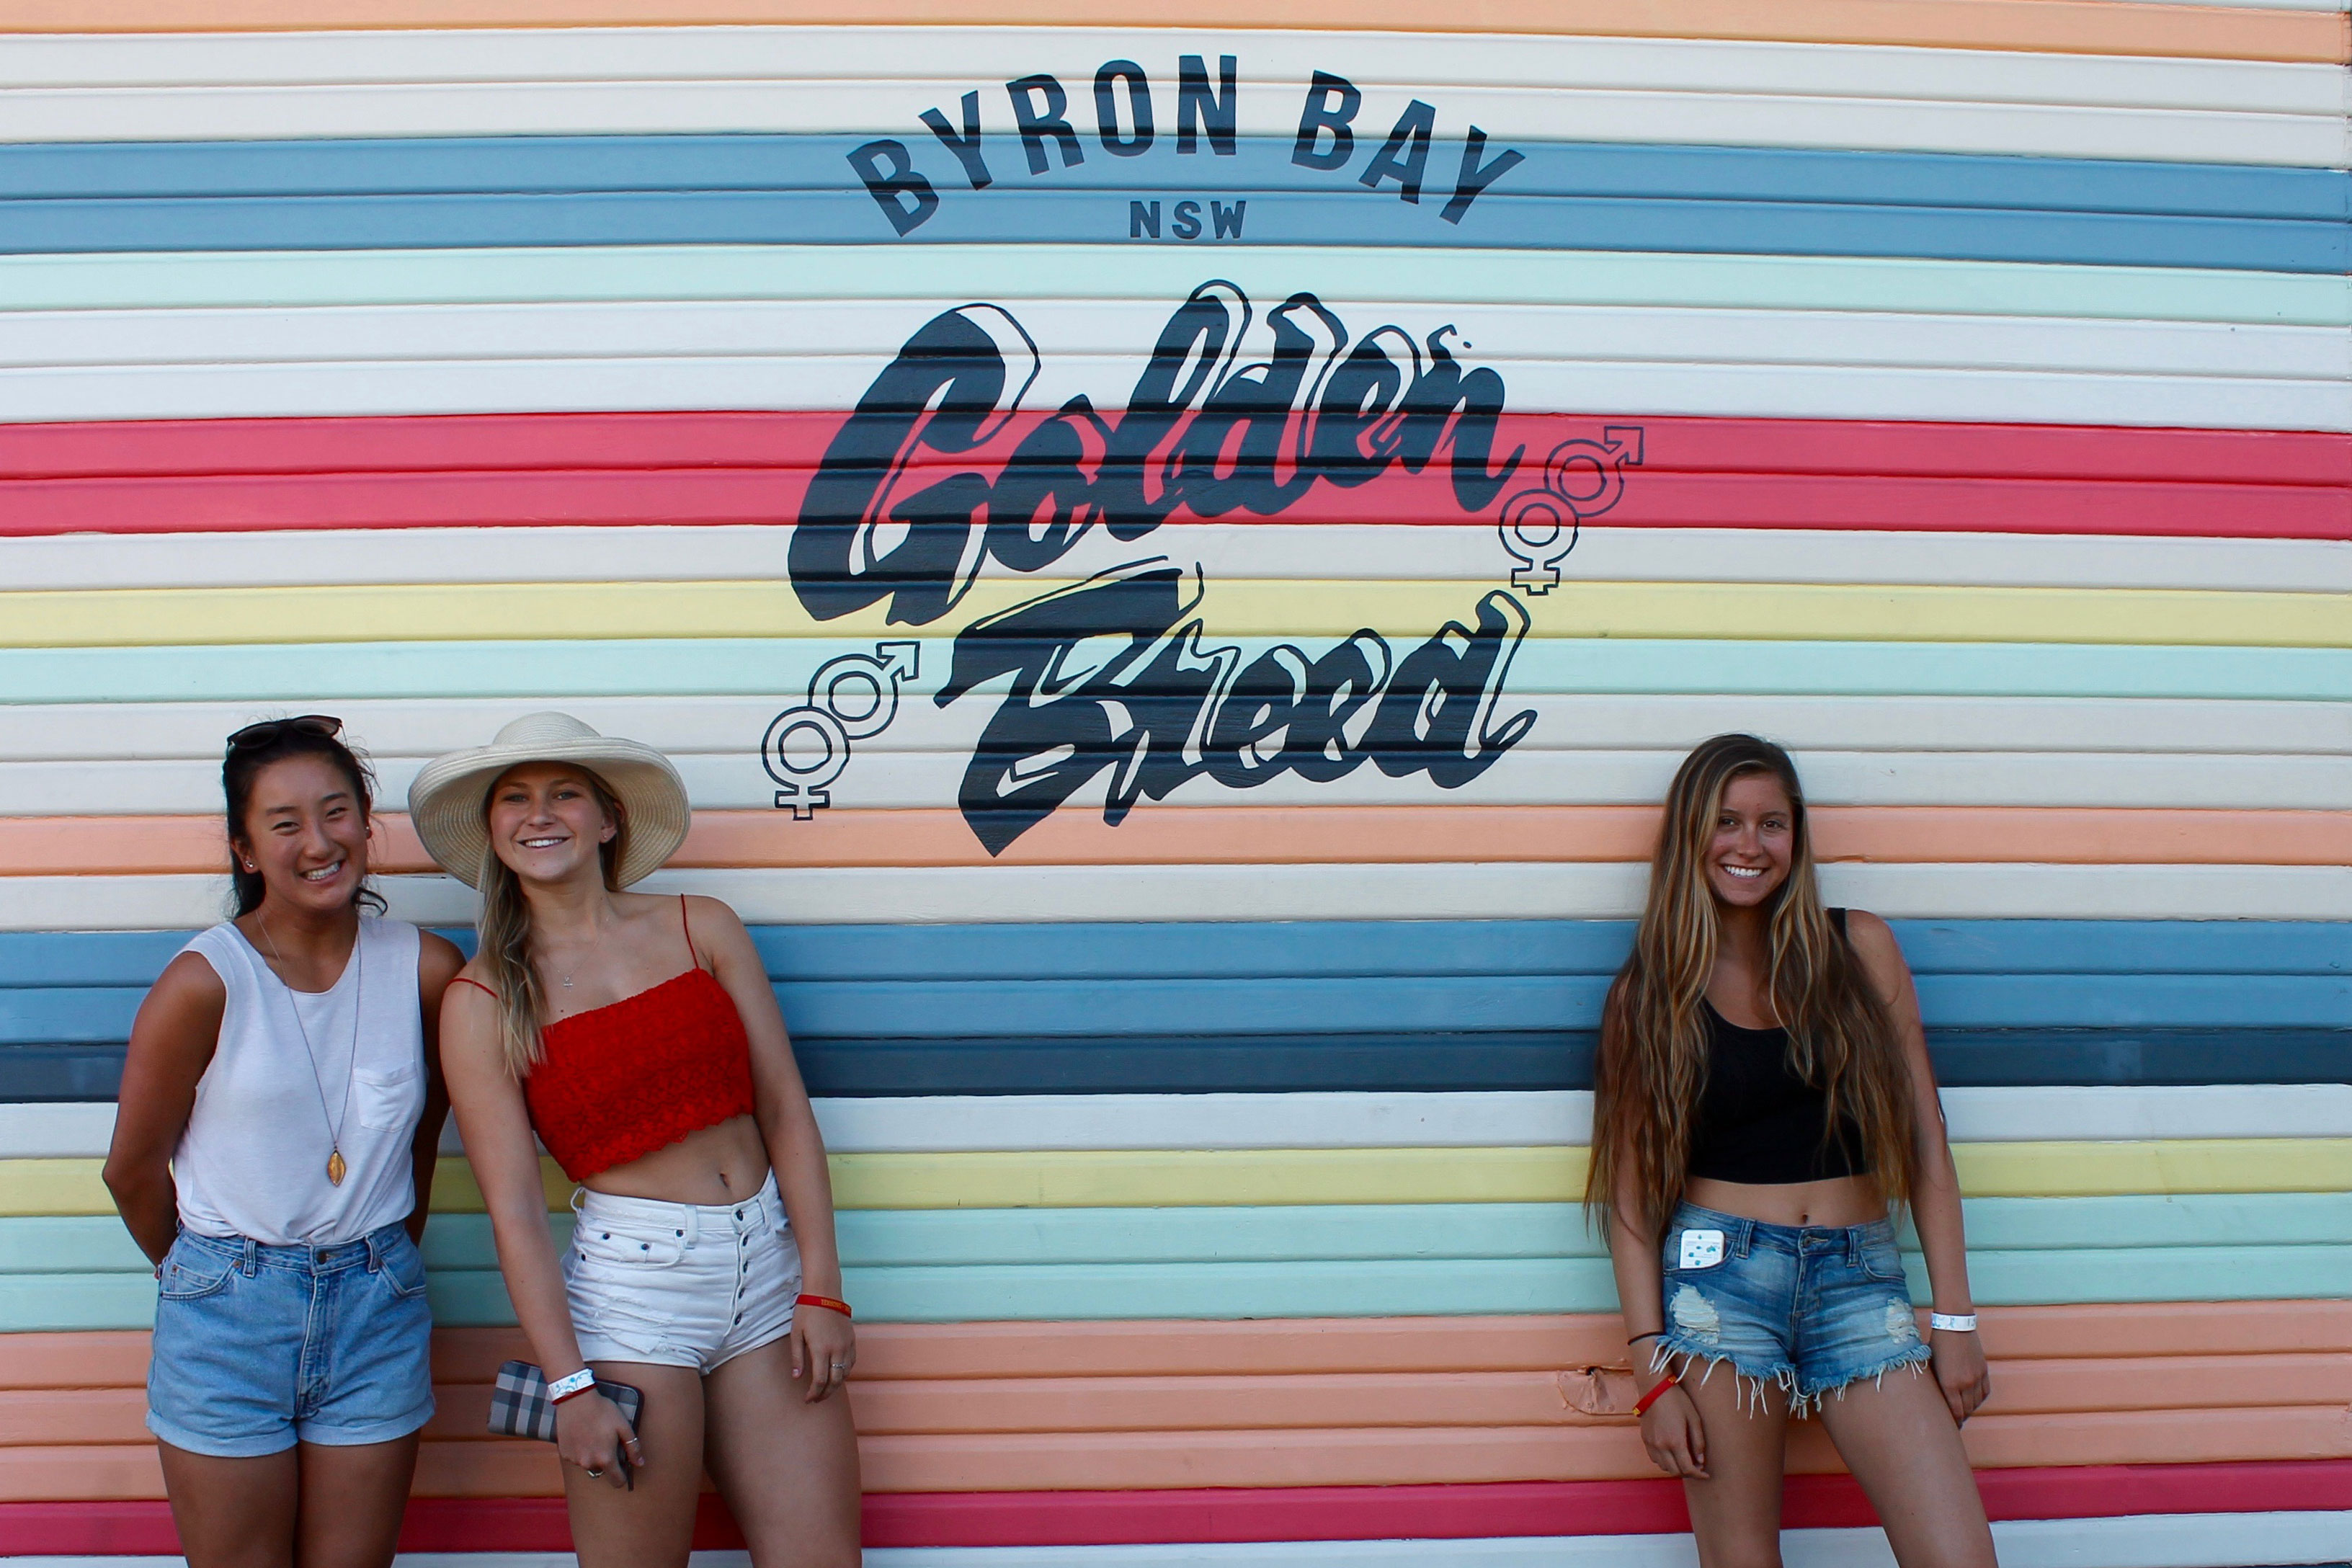 Girls smiling in front of a mural